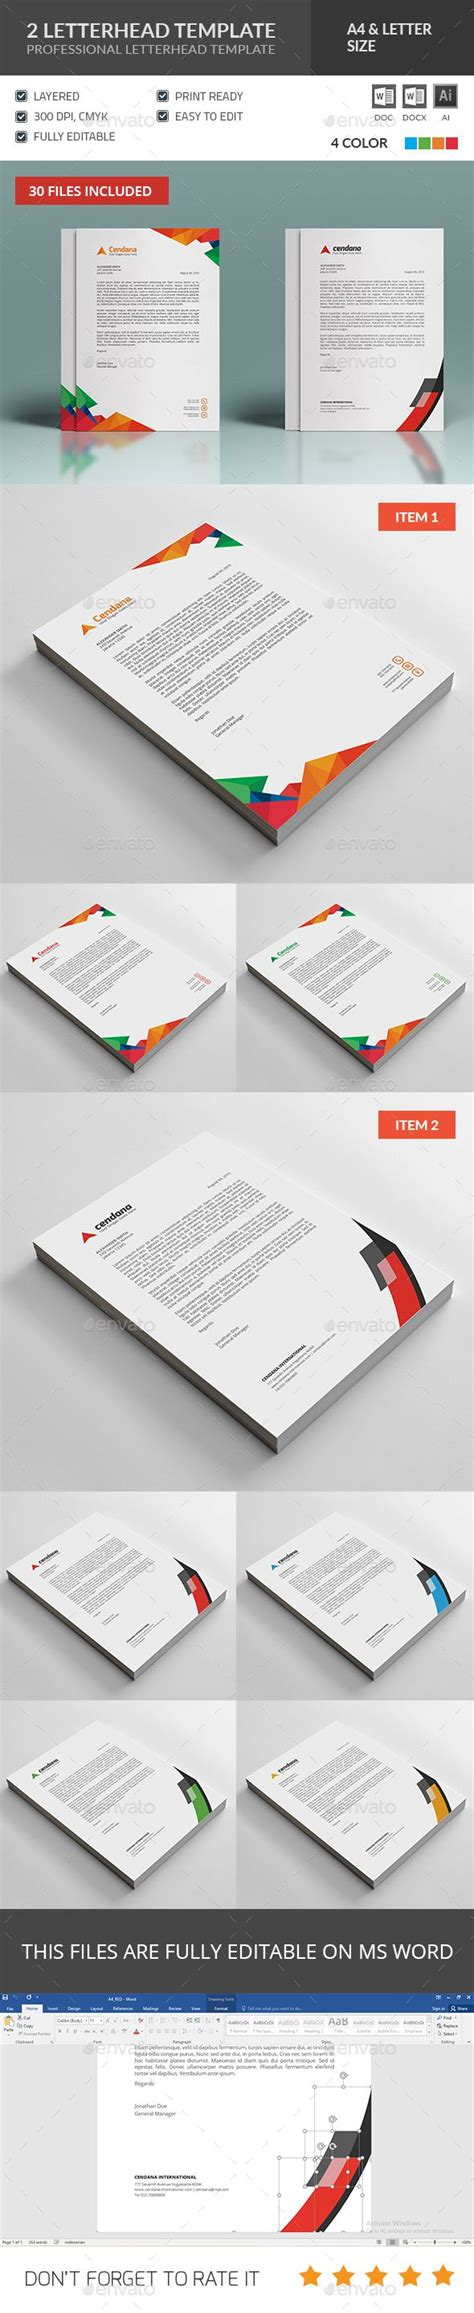 editable letterhead template business theme 2 25 best ideas about professional letterhead on